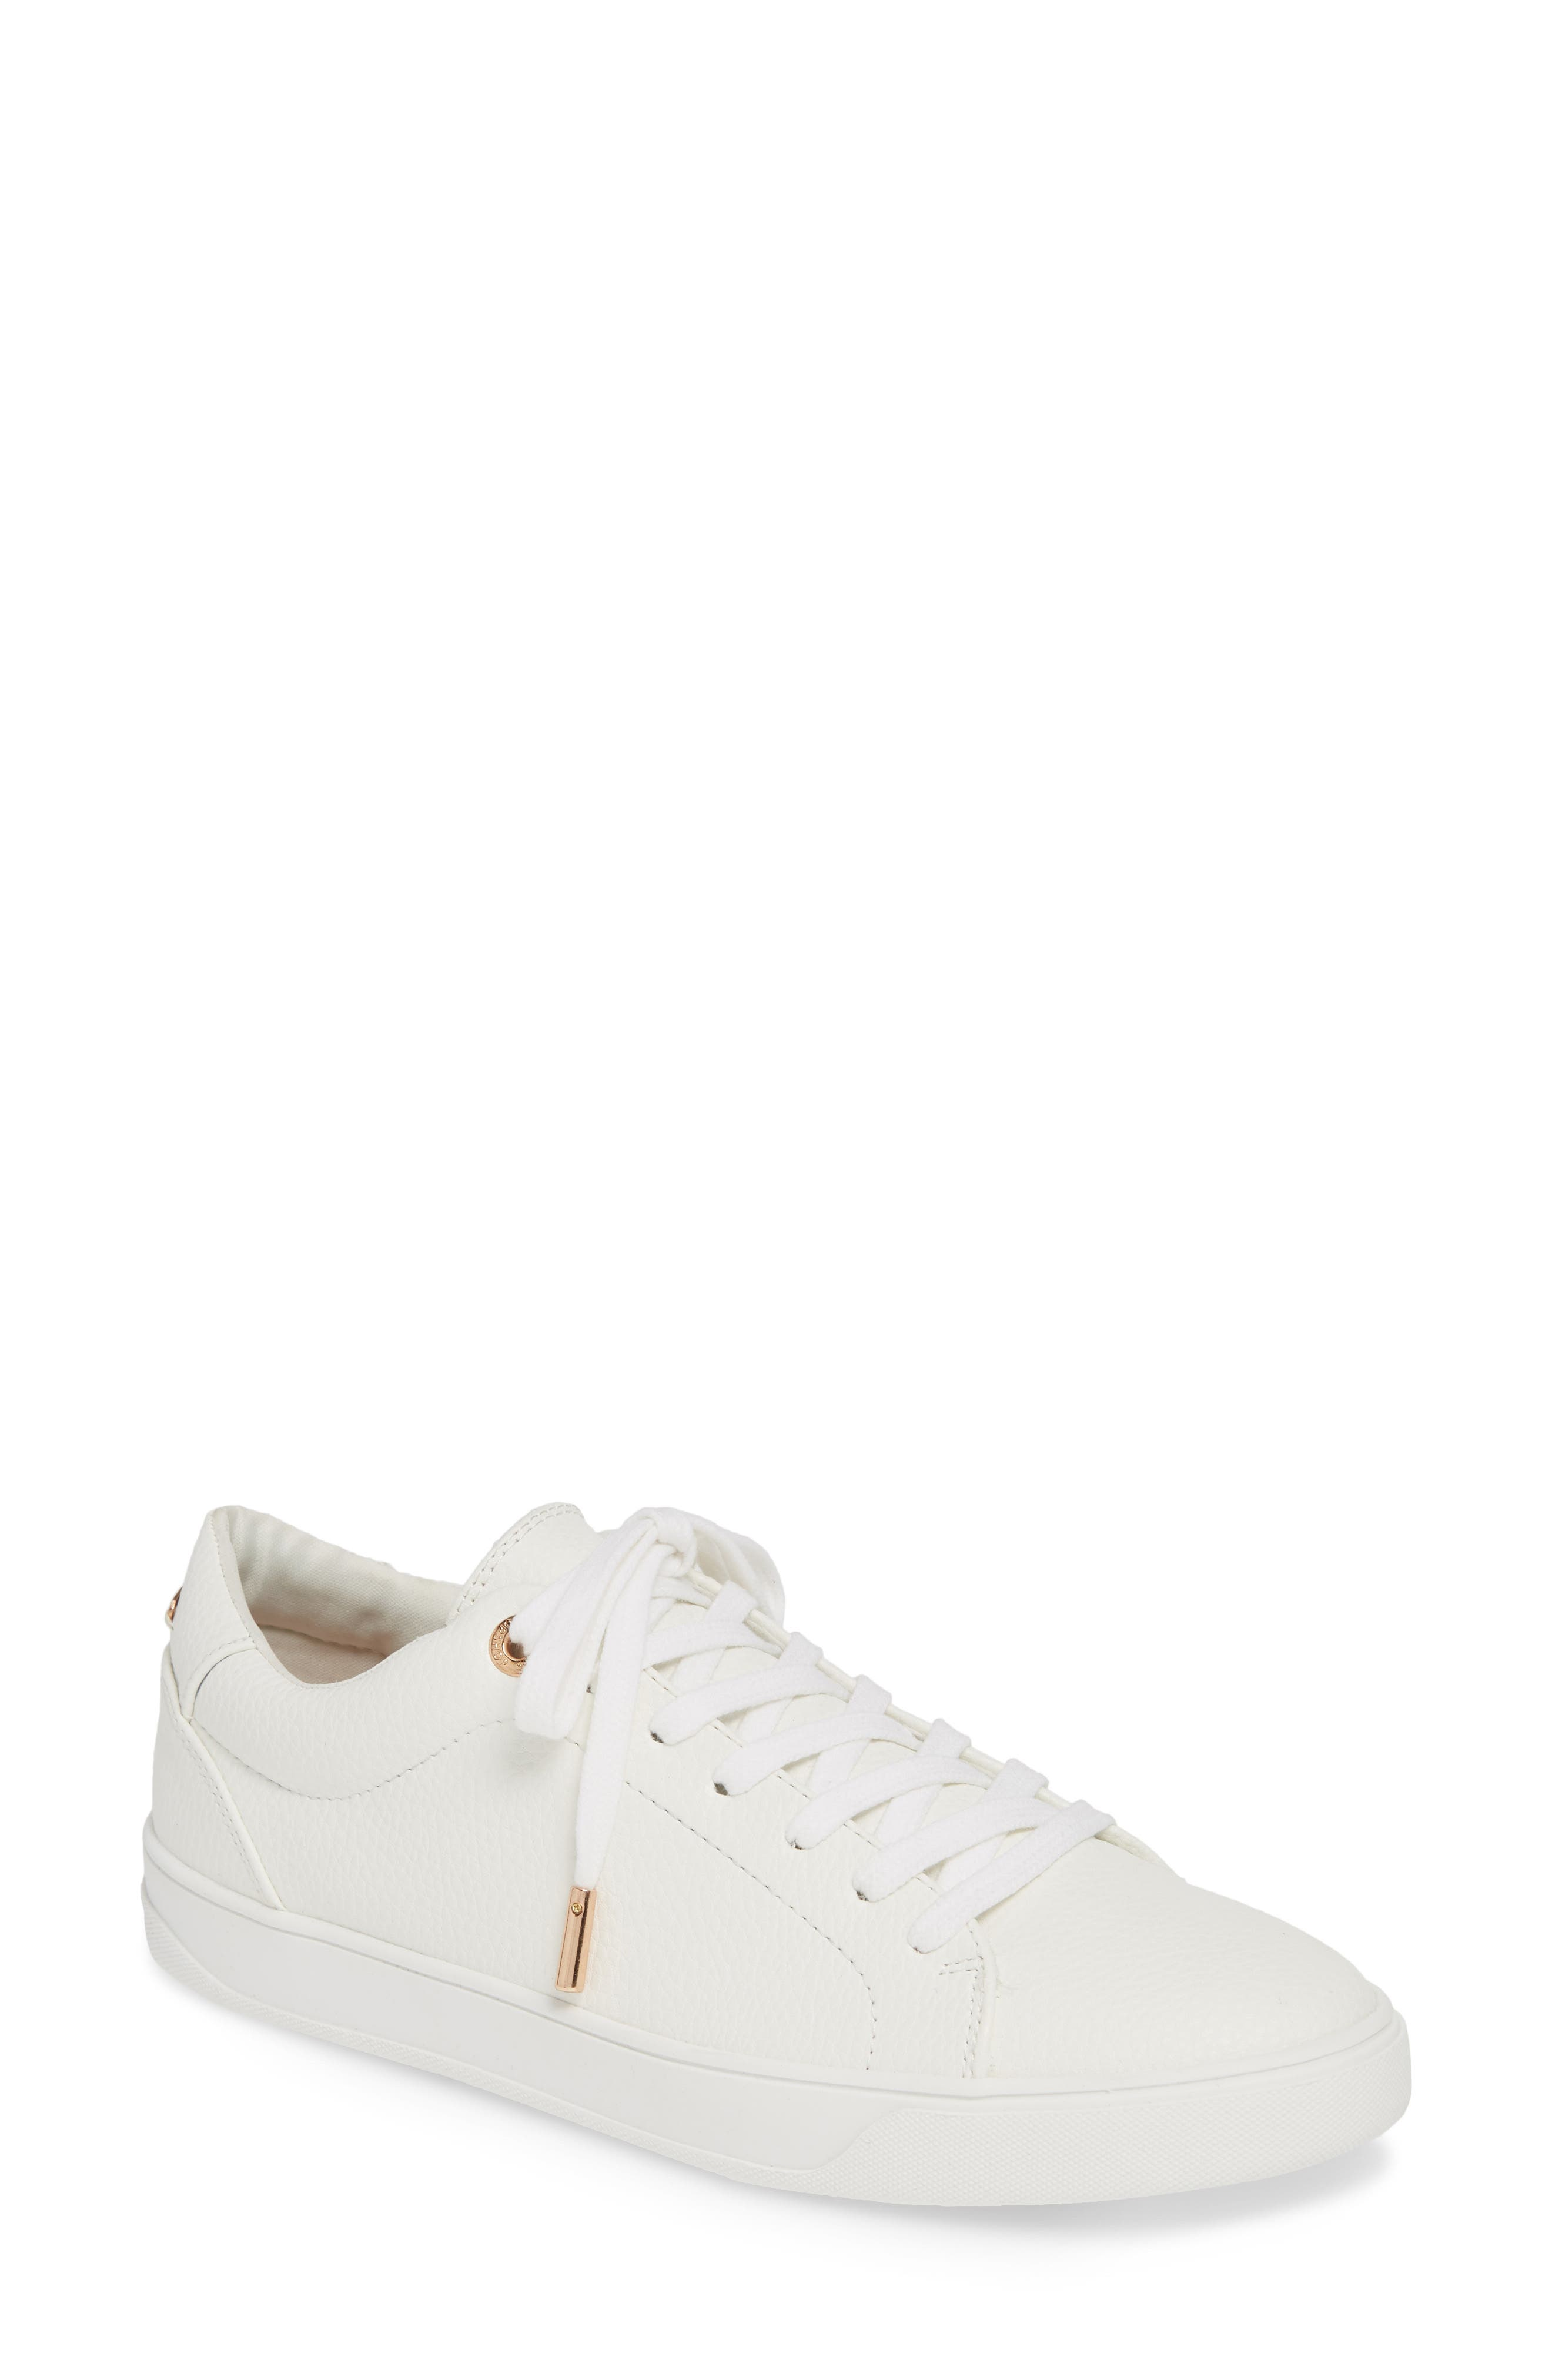 Topshop Curly Low Top Sneaker - White